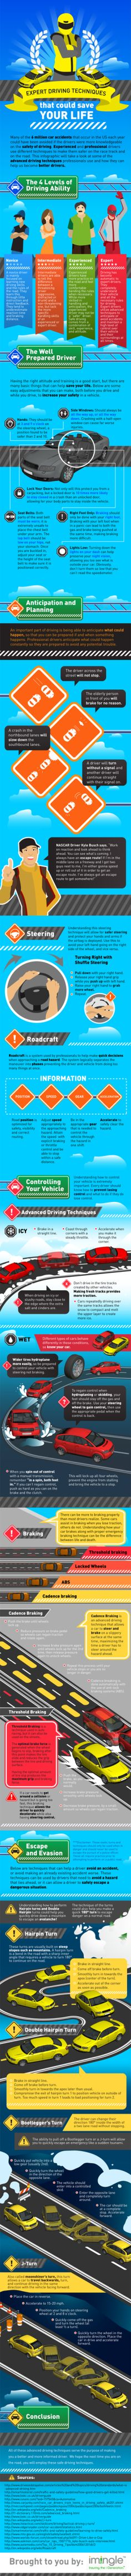 Expert driving tips that could save your life...